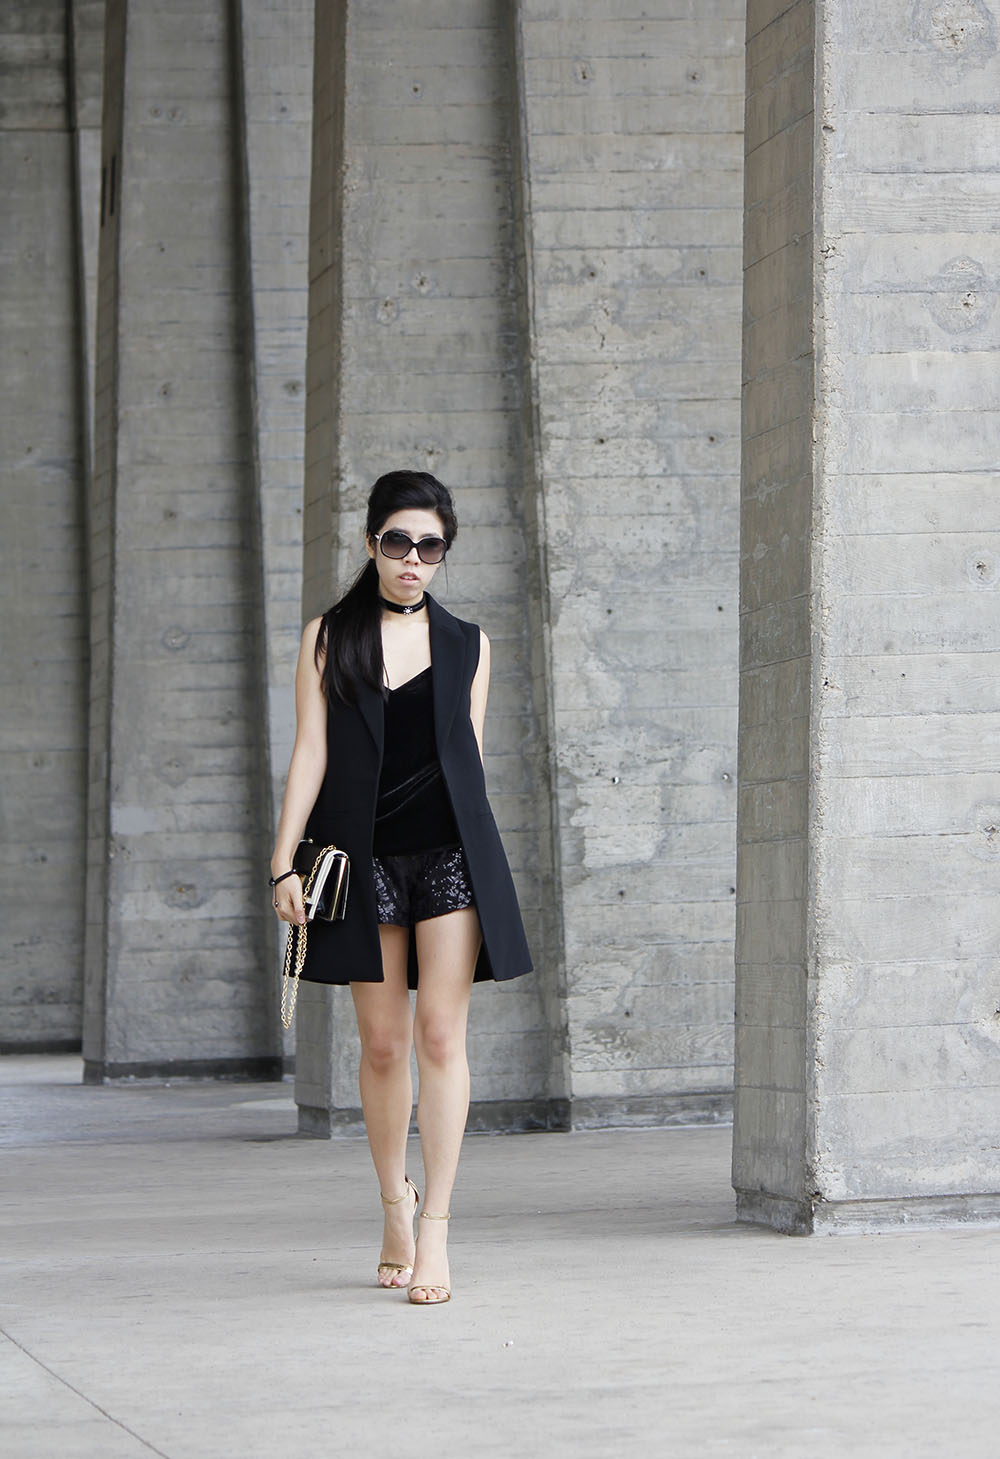 How to Transition from Office to Club_Adrienne Nguyen